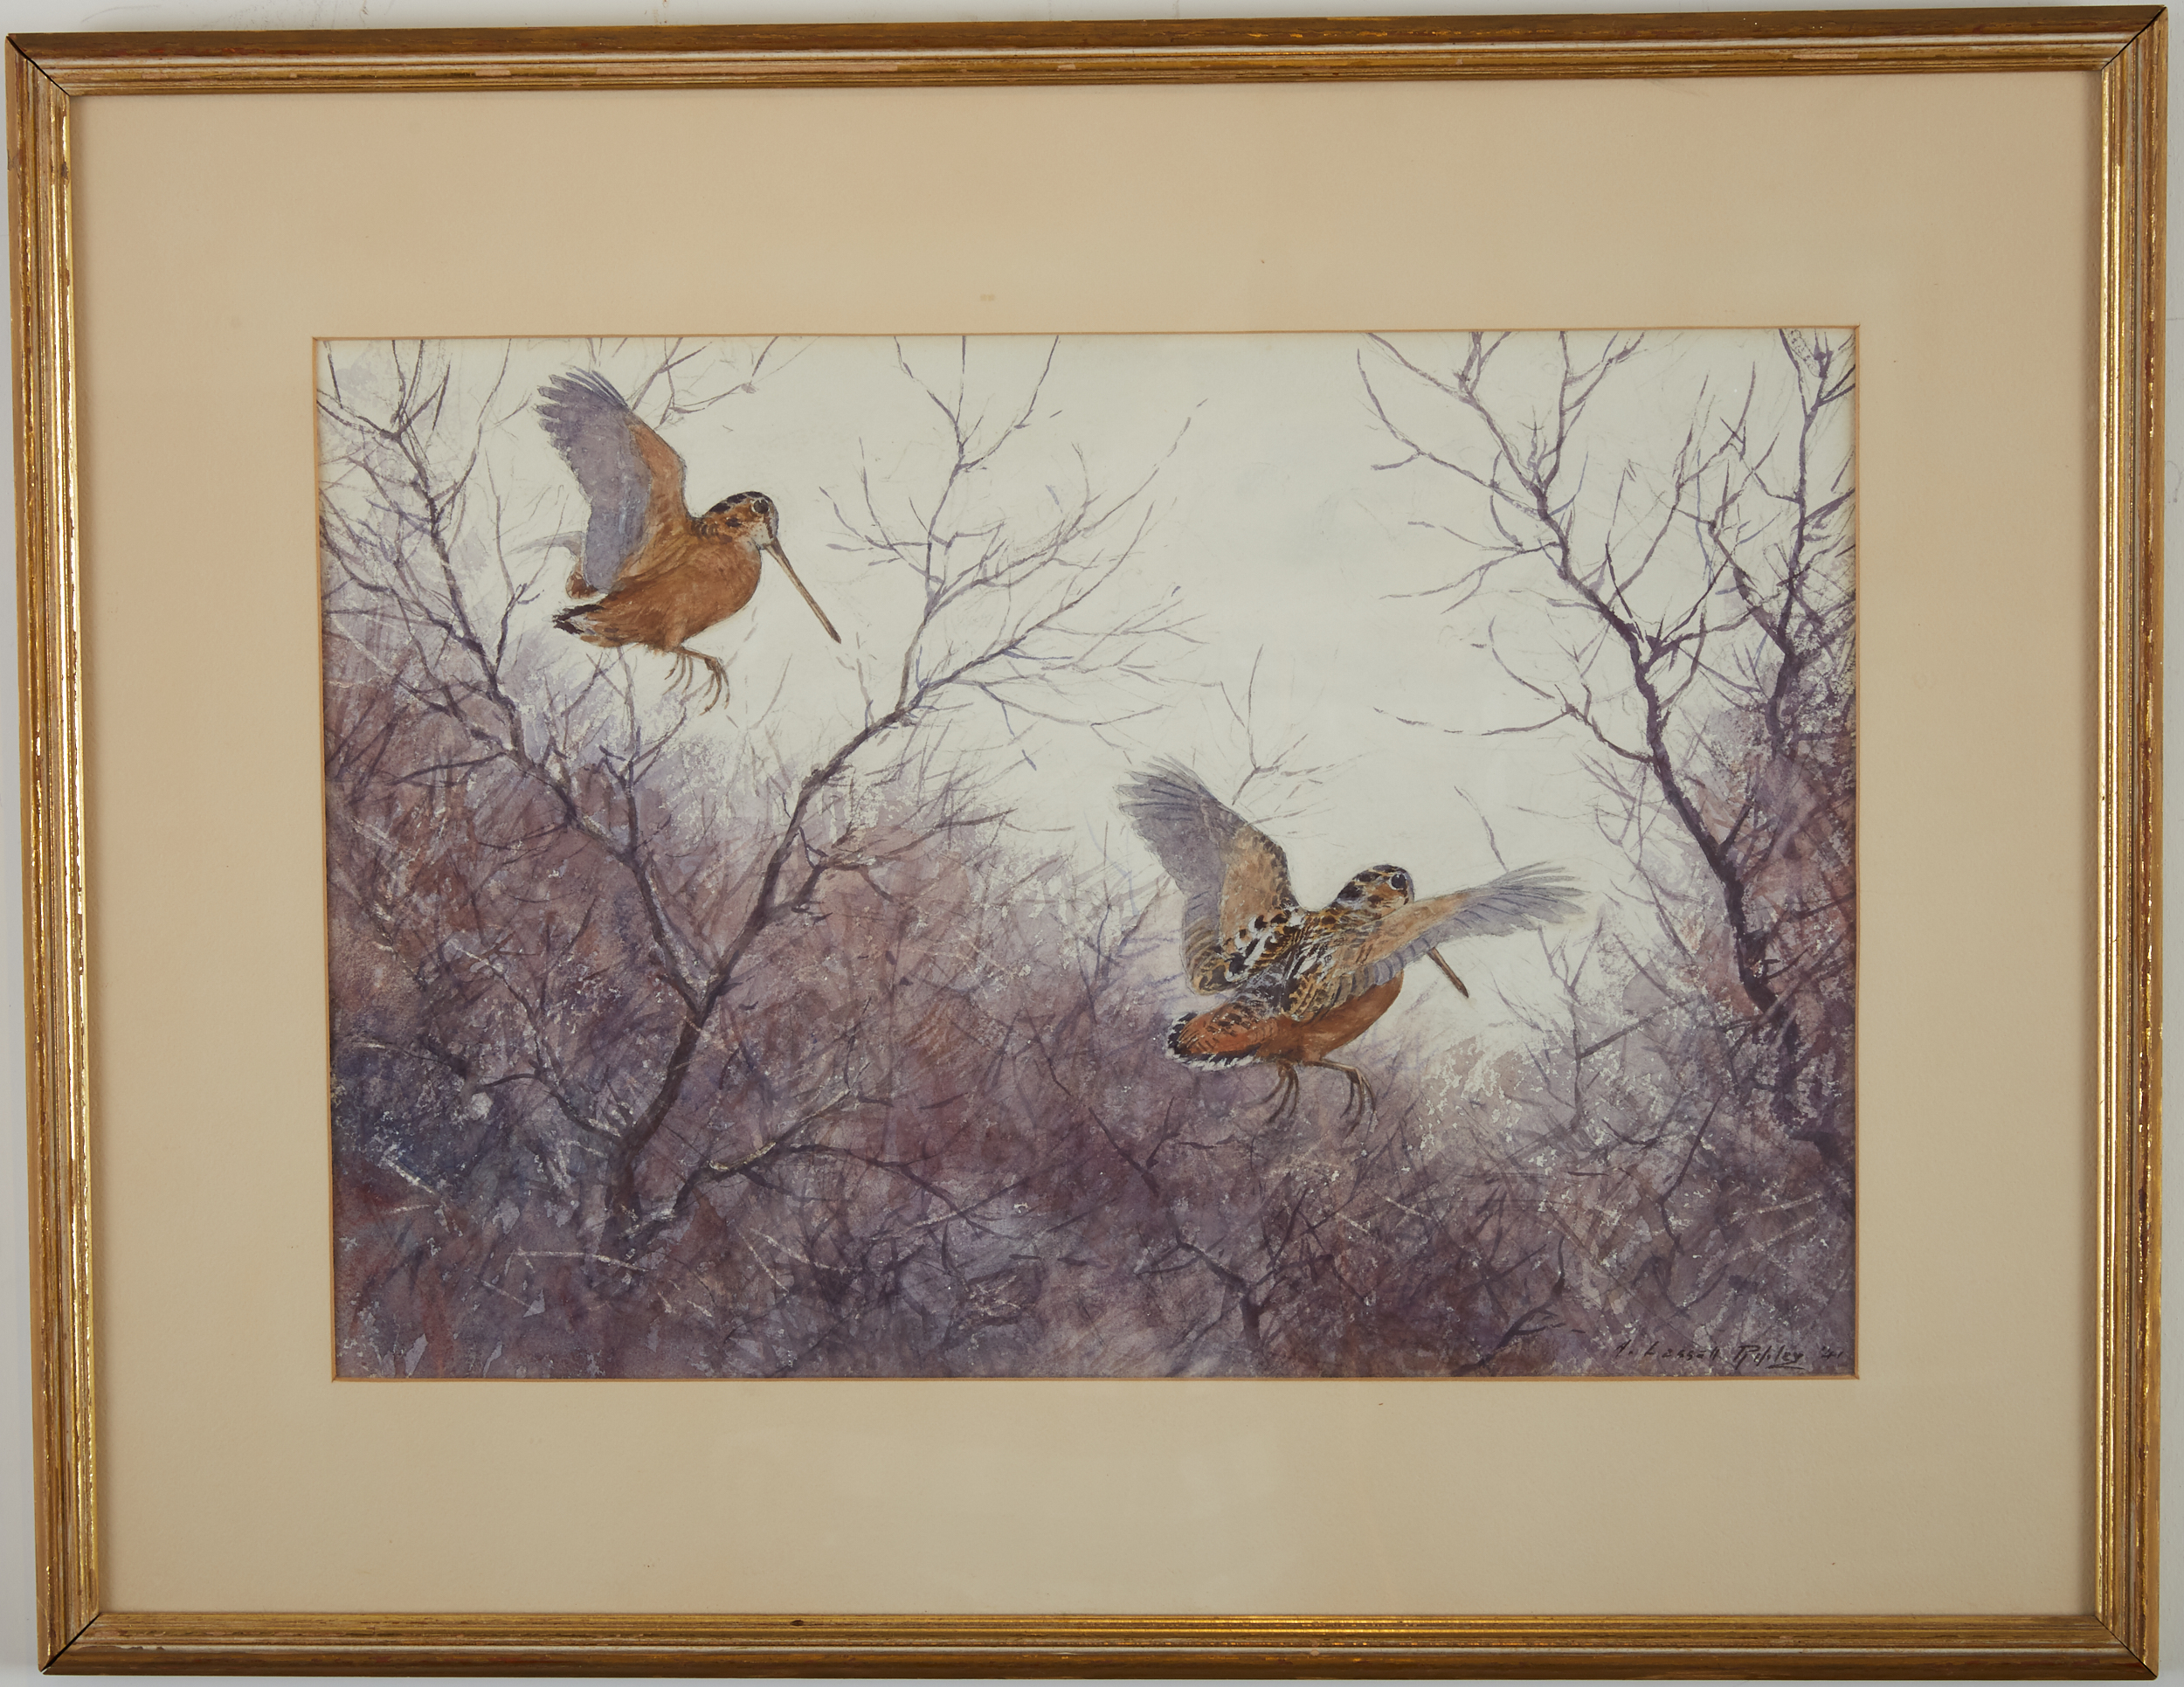 Lot 25 - Aiden Lassell Ripley Watercolor Painting of Woodcocks